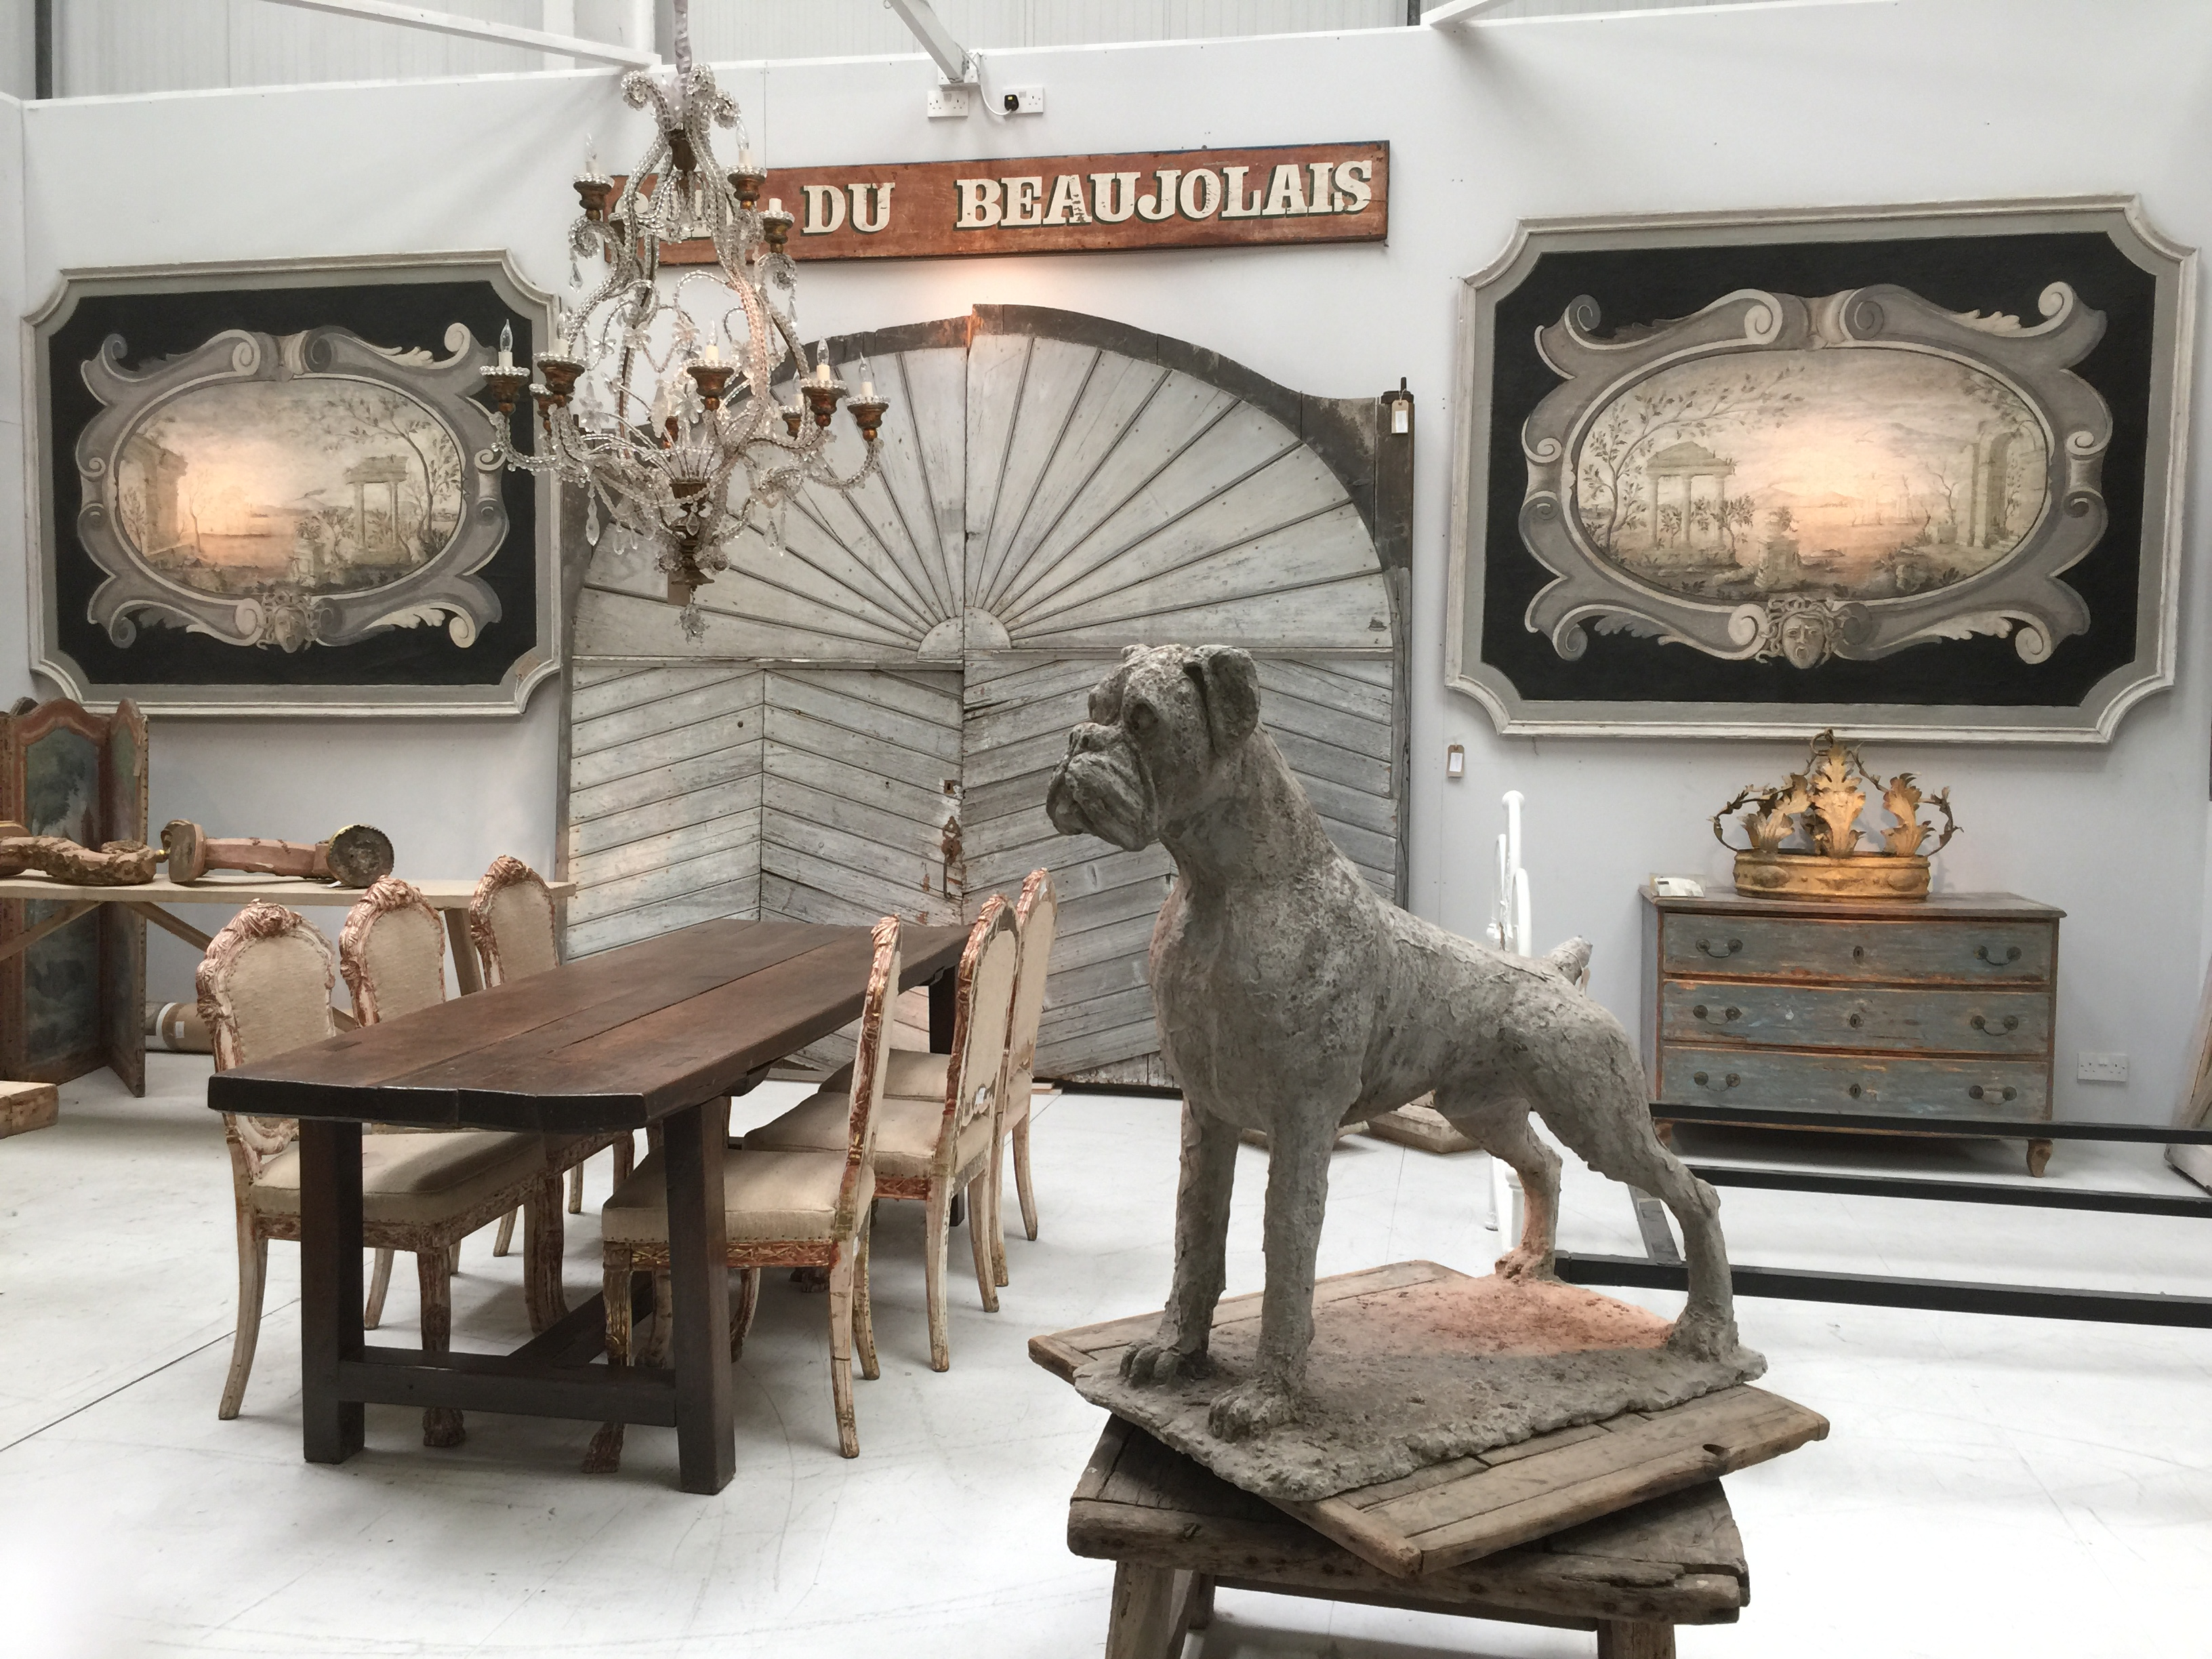 decorative European antiques found in the Cotswold